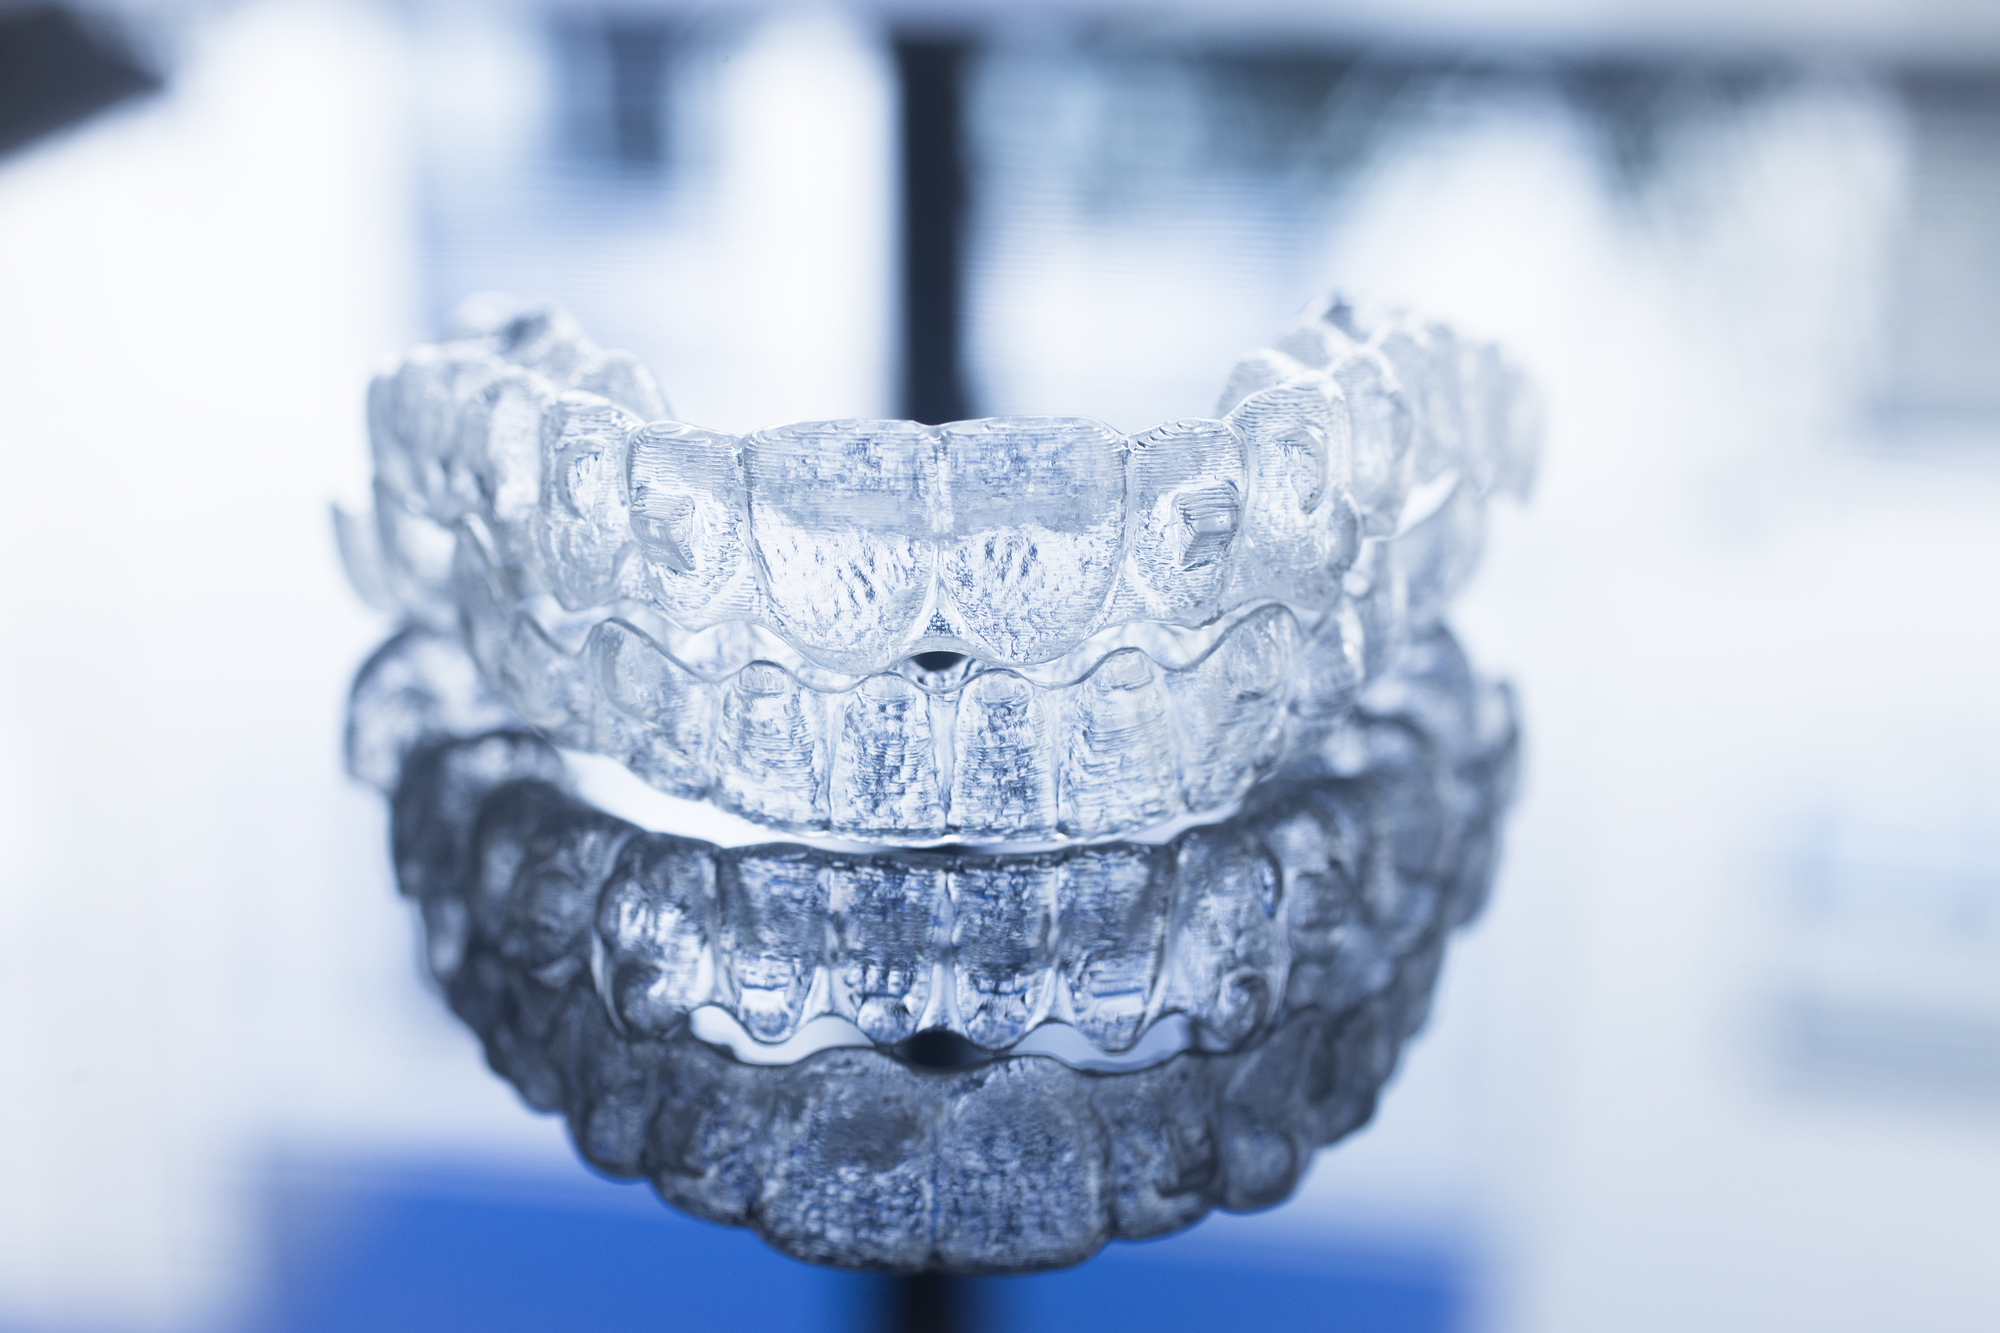 What is invisalign west palm beach?